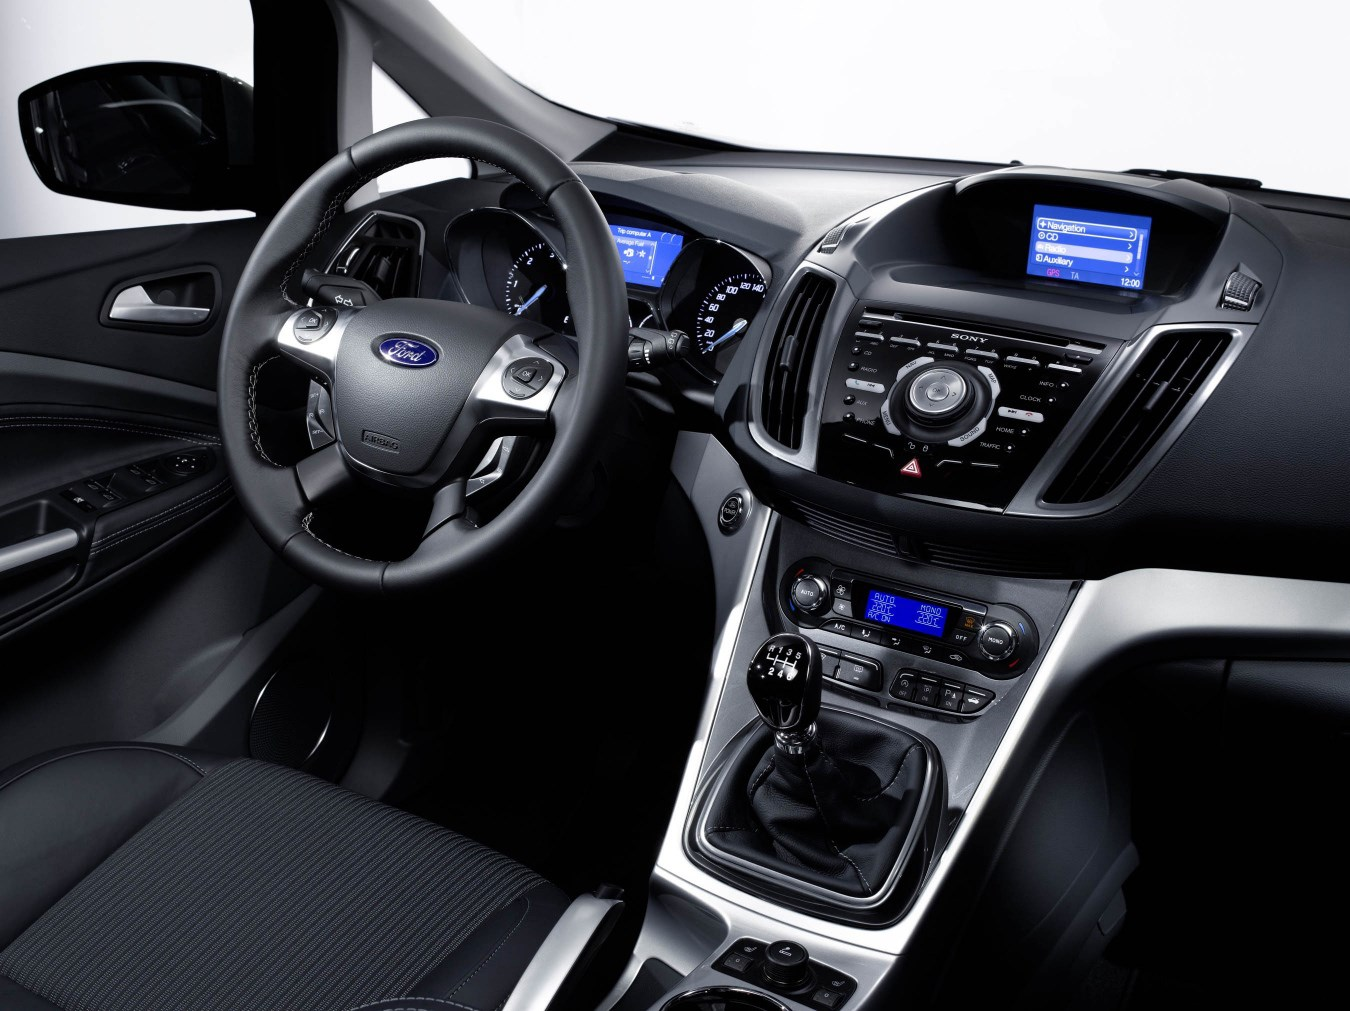 2010 Ford C-Max #23